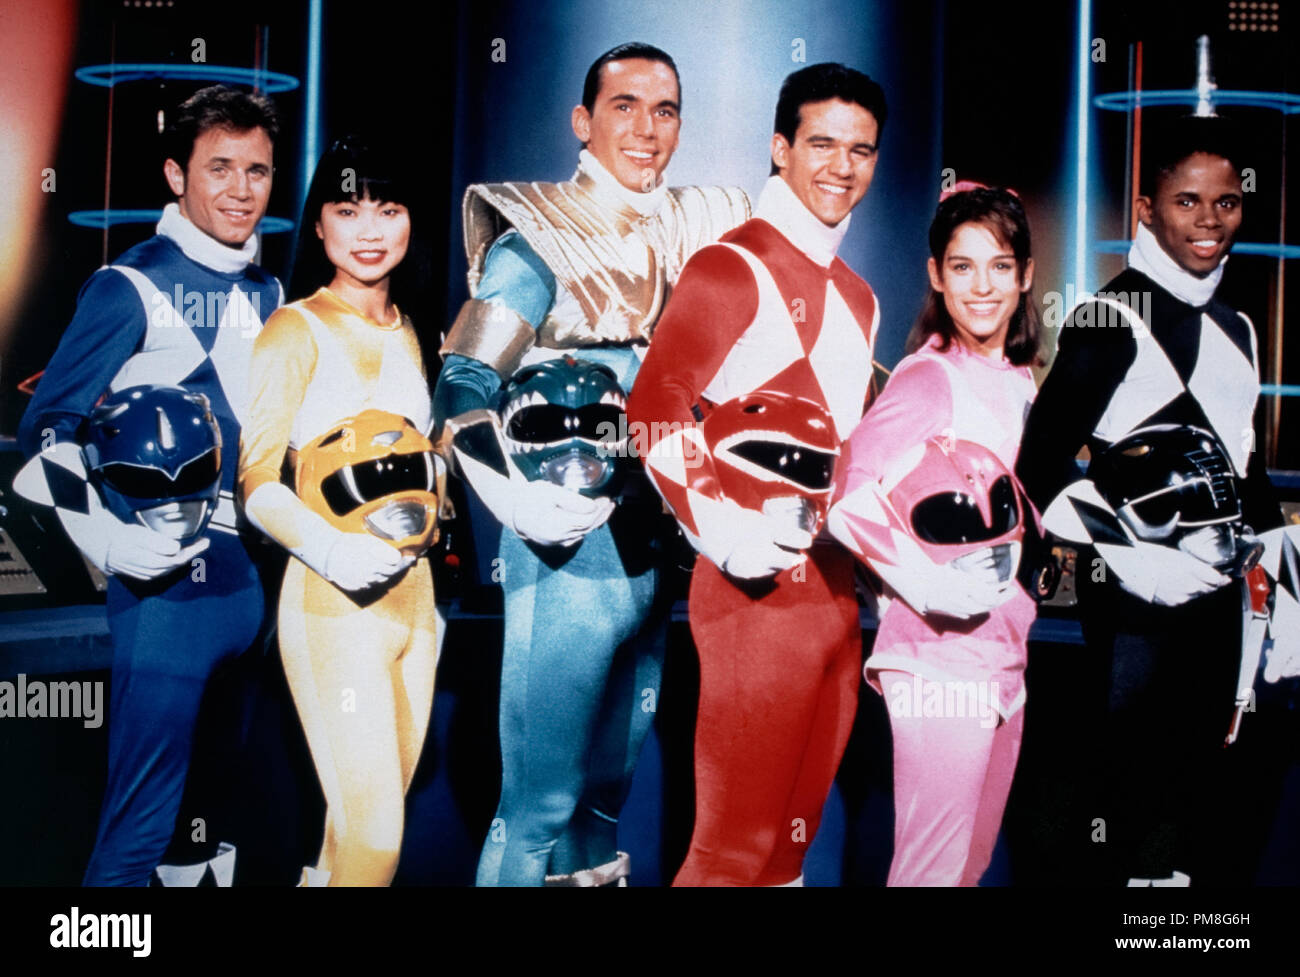 Film still / publicity still from 'Mighty Morphin' Power Rangers' David Yost, Thuy Trang, Jason David Frank, Steve Cardenas, Amy Jo Johnson circa 1993   File Reference # 31371221THA  For Editorial Use Only All Rights Reserved - Stock Image